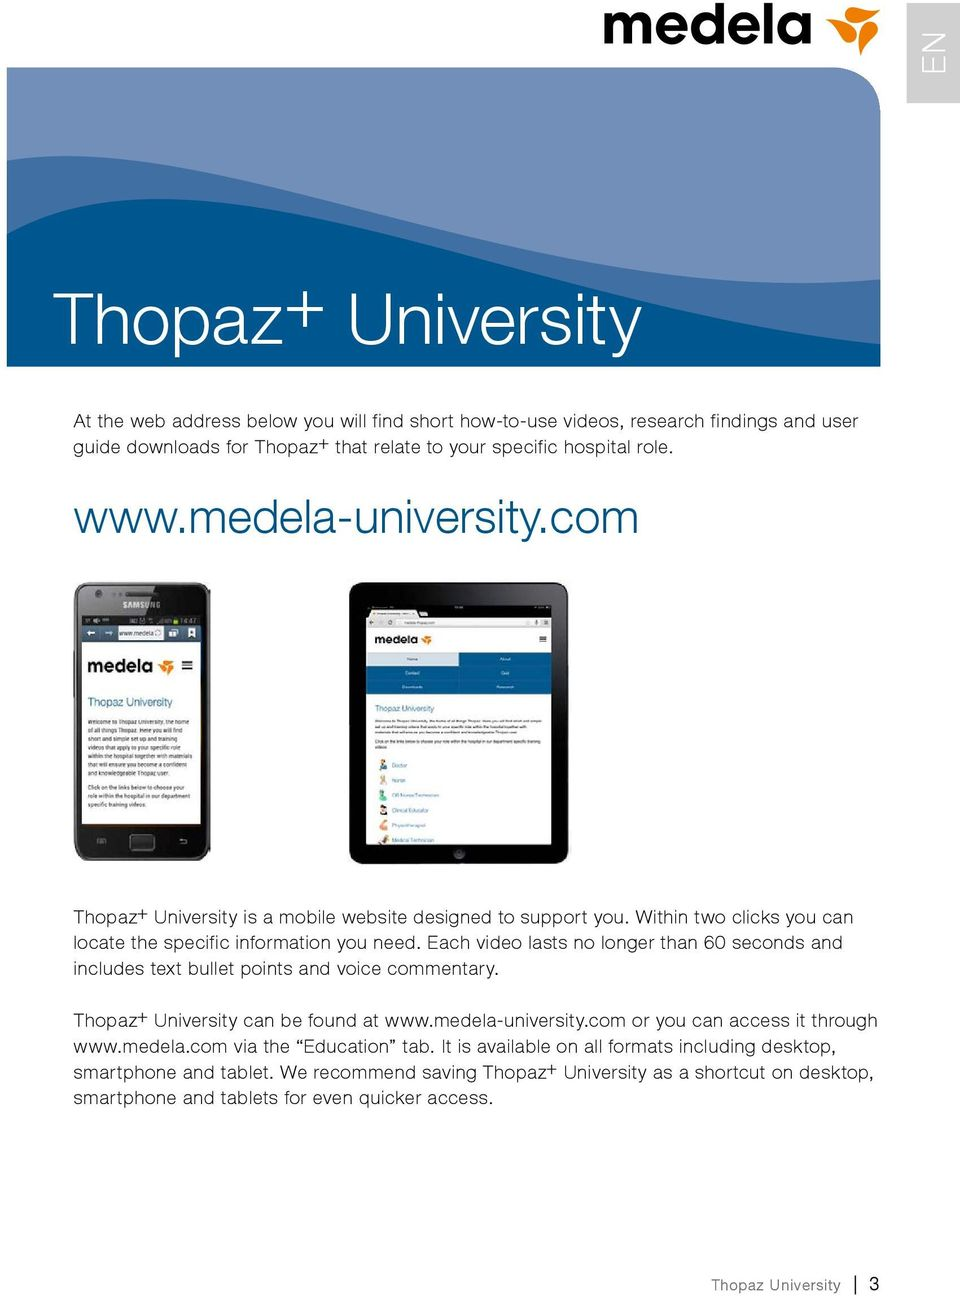 Each video lasts no longer than 60 seconds and includes text bullet points and voice commentary. Thopaz+ University can be found at www.medela-university.com or you can access it through www.